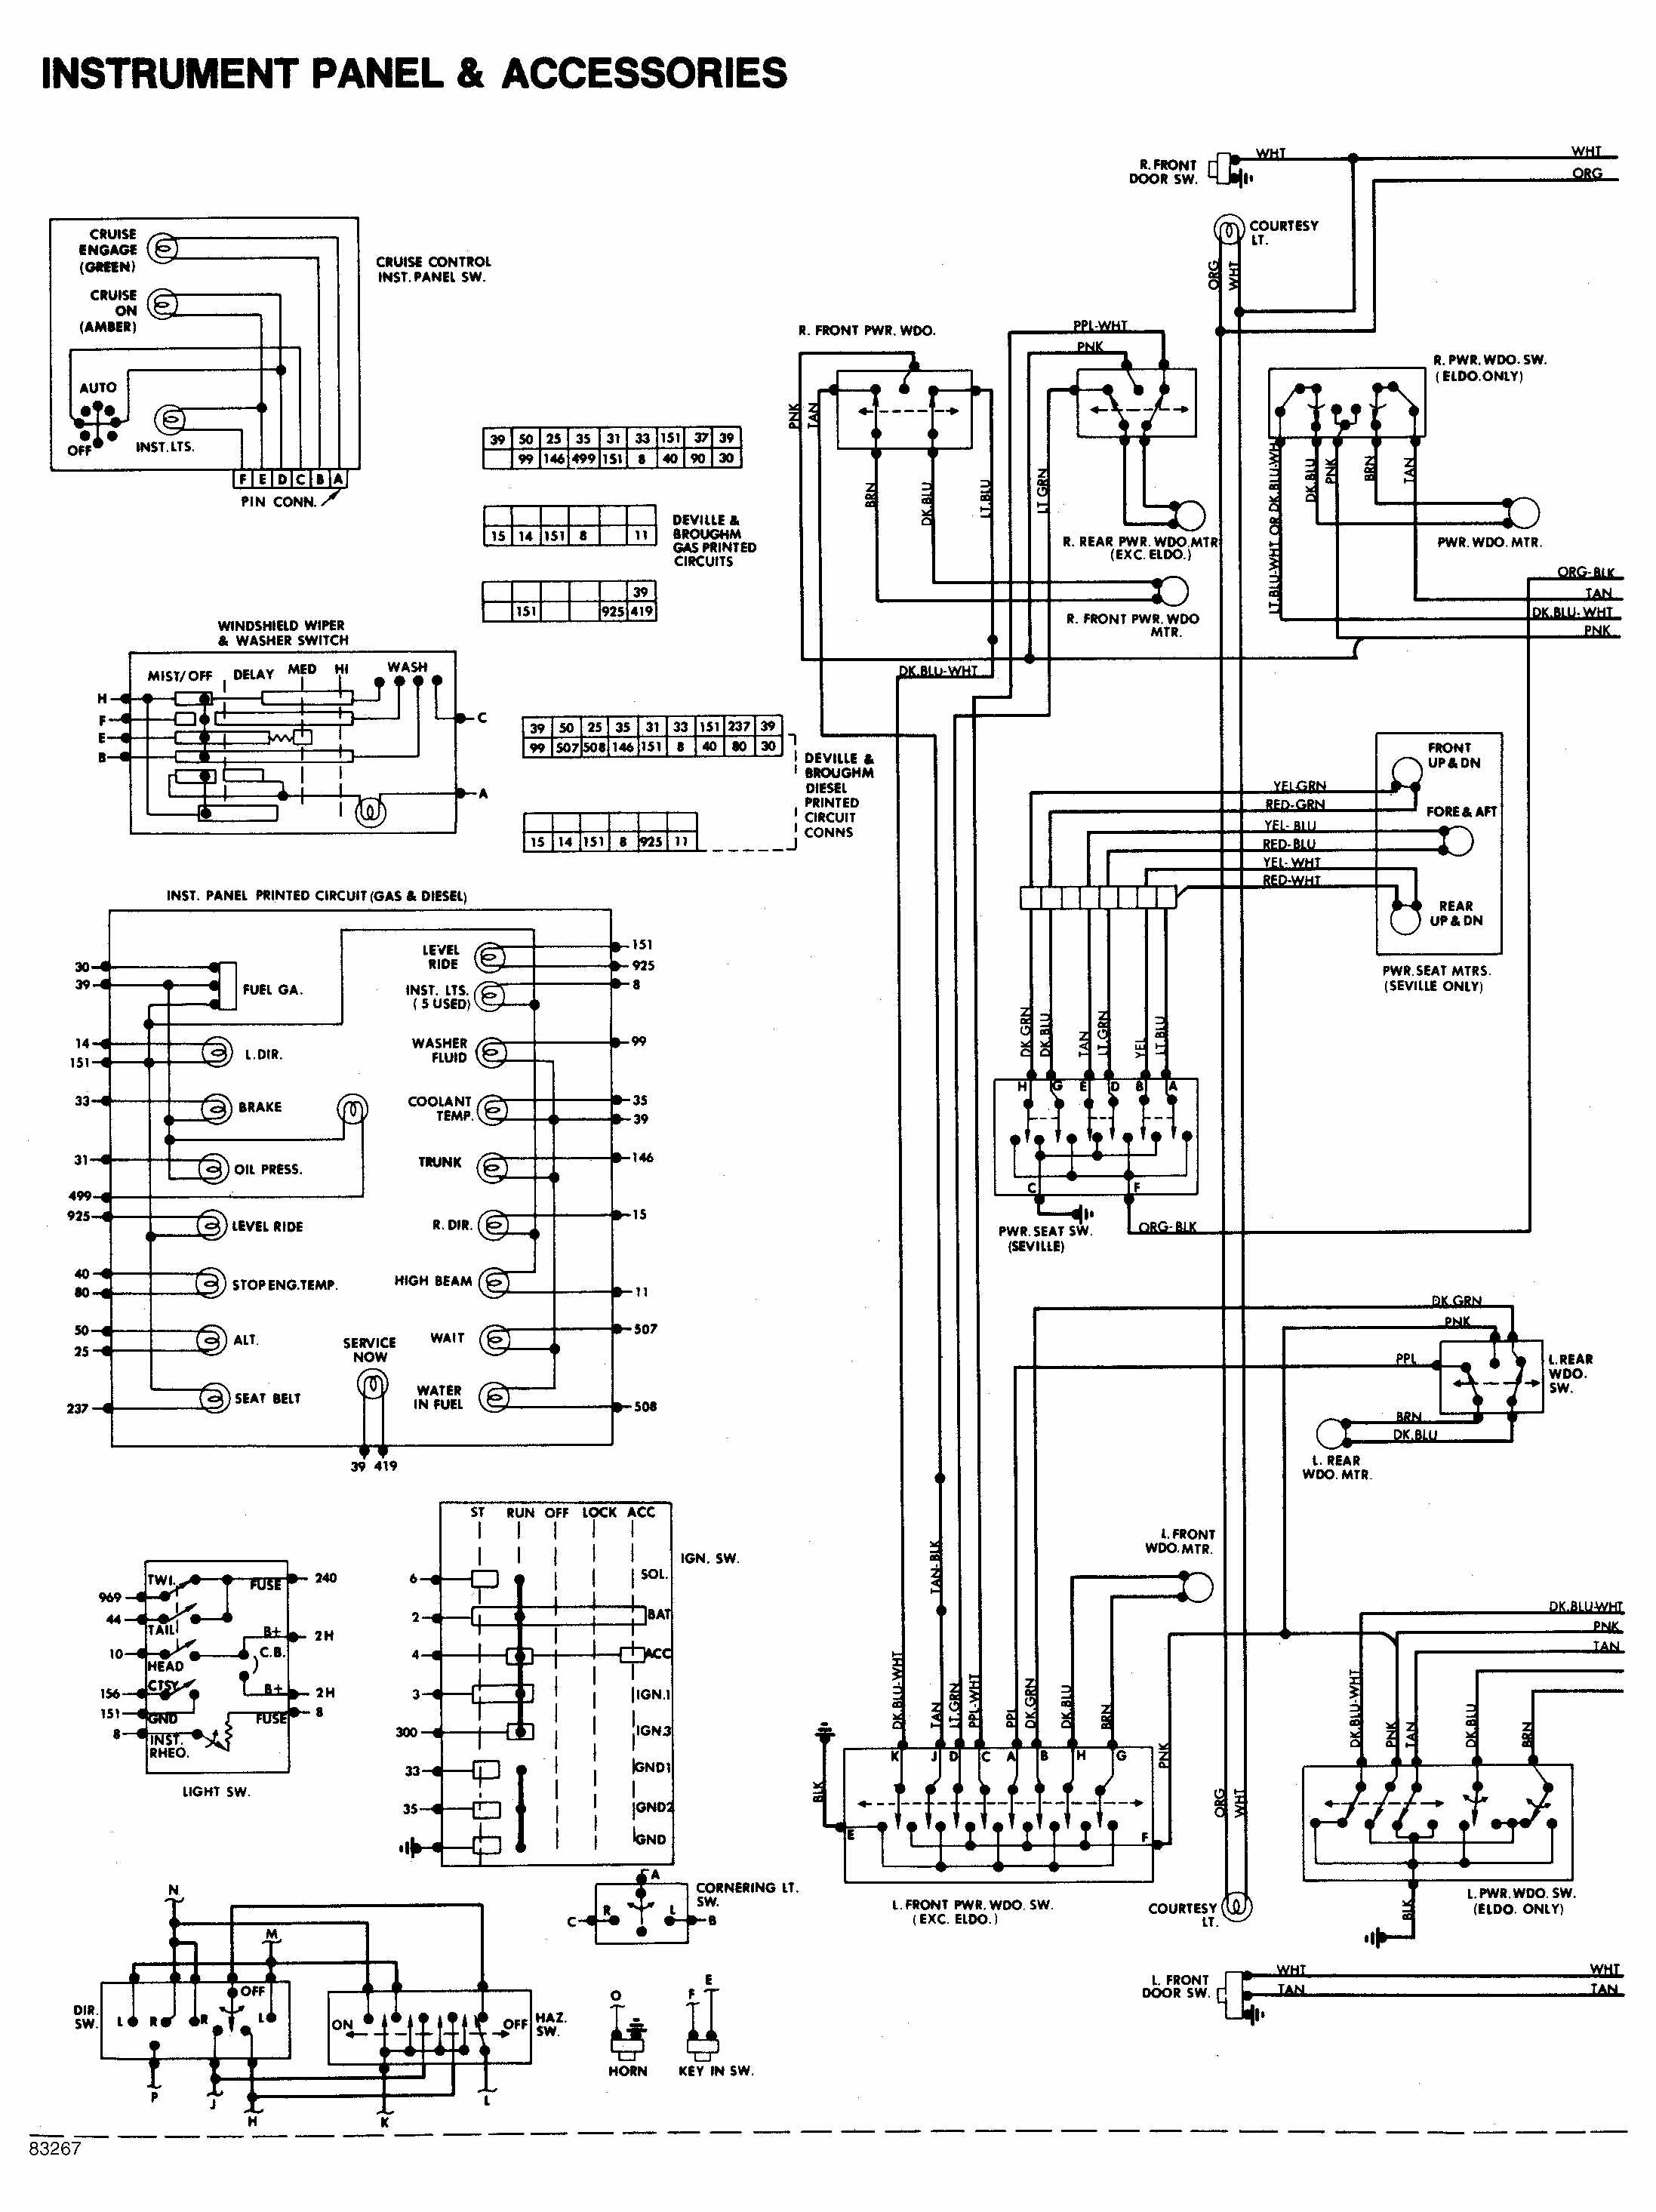 instrument panel and accessories wiring diagram of 1984 cadillac deville gm wiring diagrams gm wiring diagrams online \u2022 wiring diagrams j 1985 Buick Regal at couponss.co